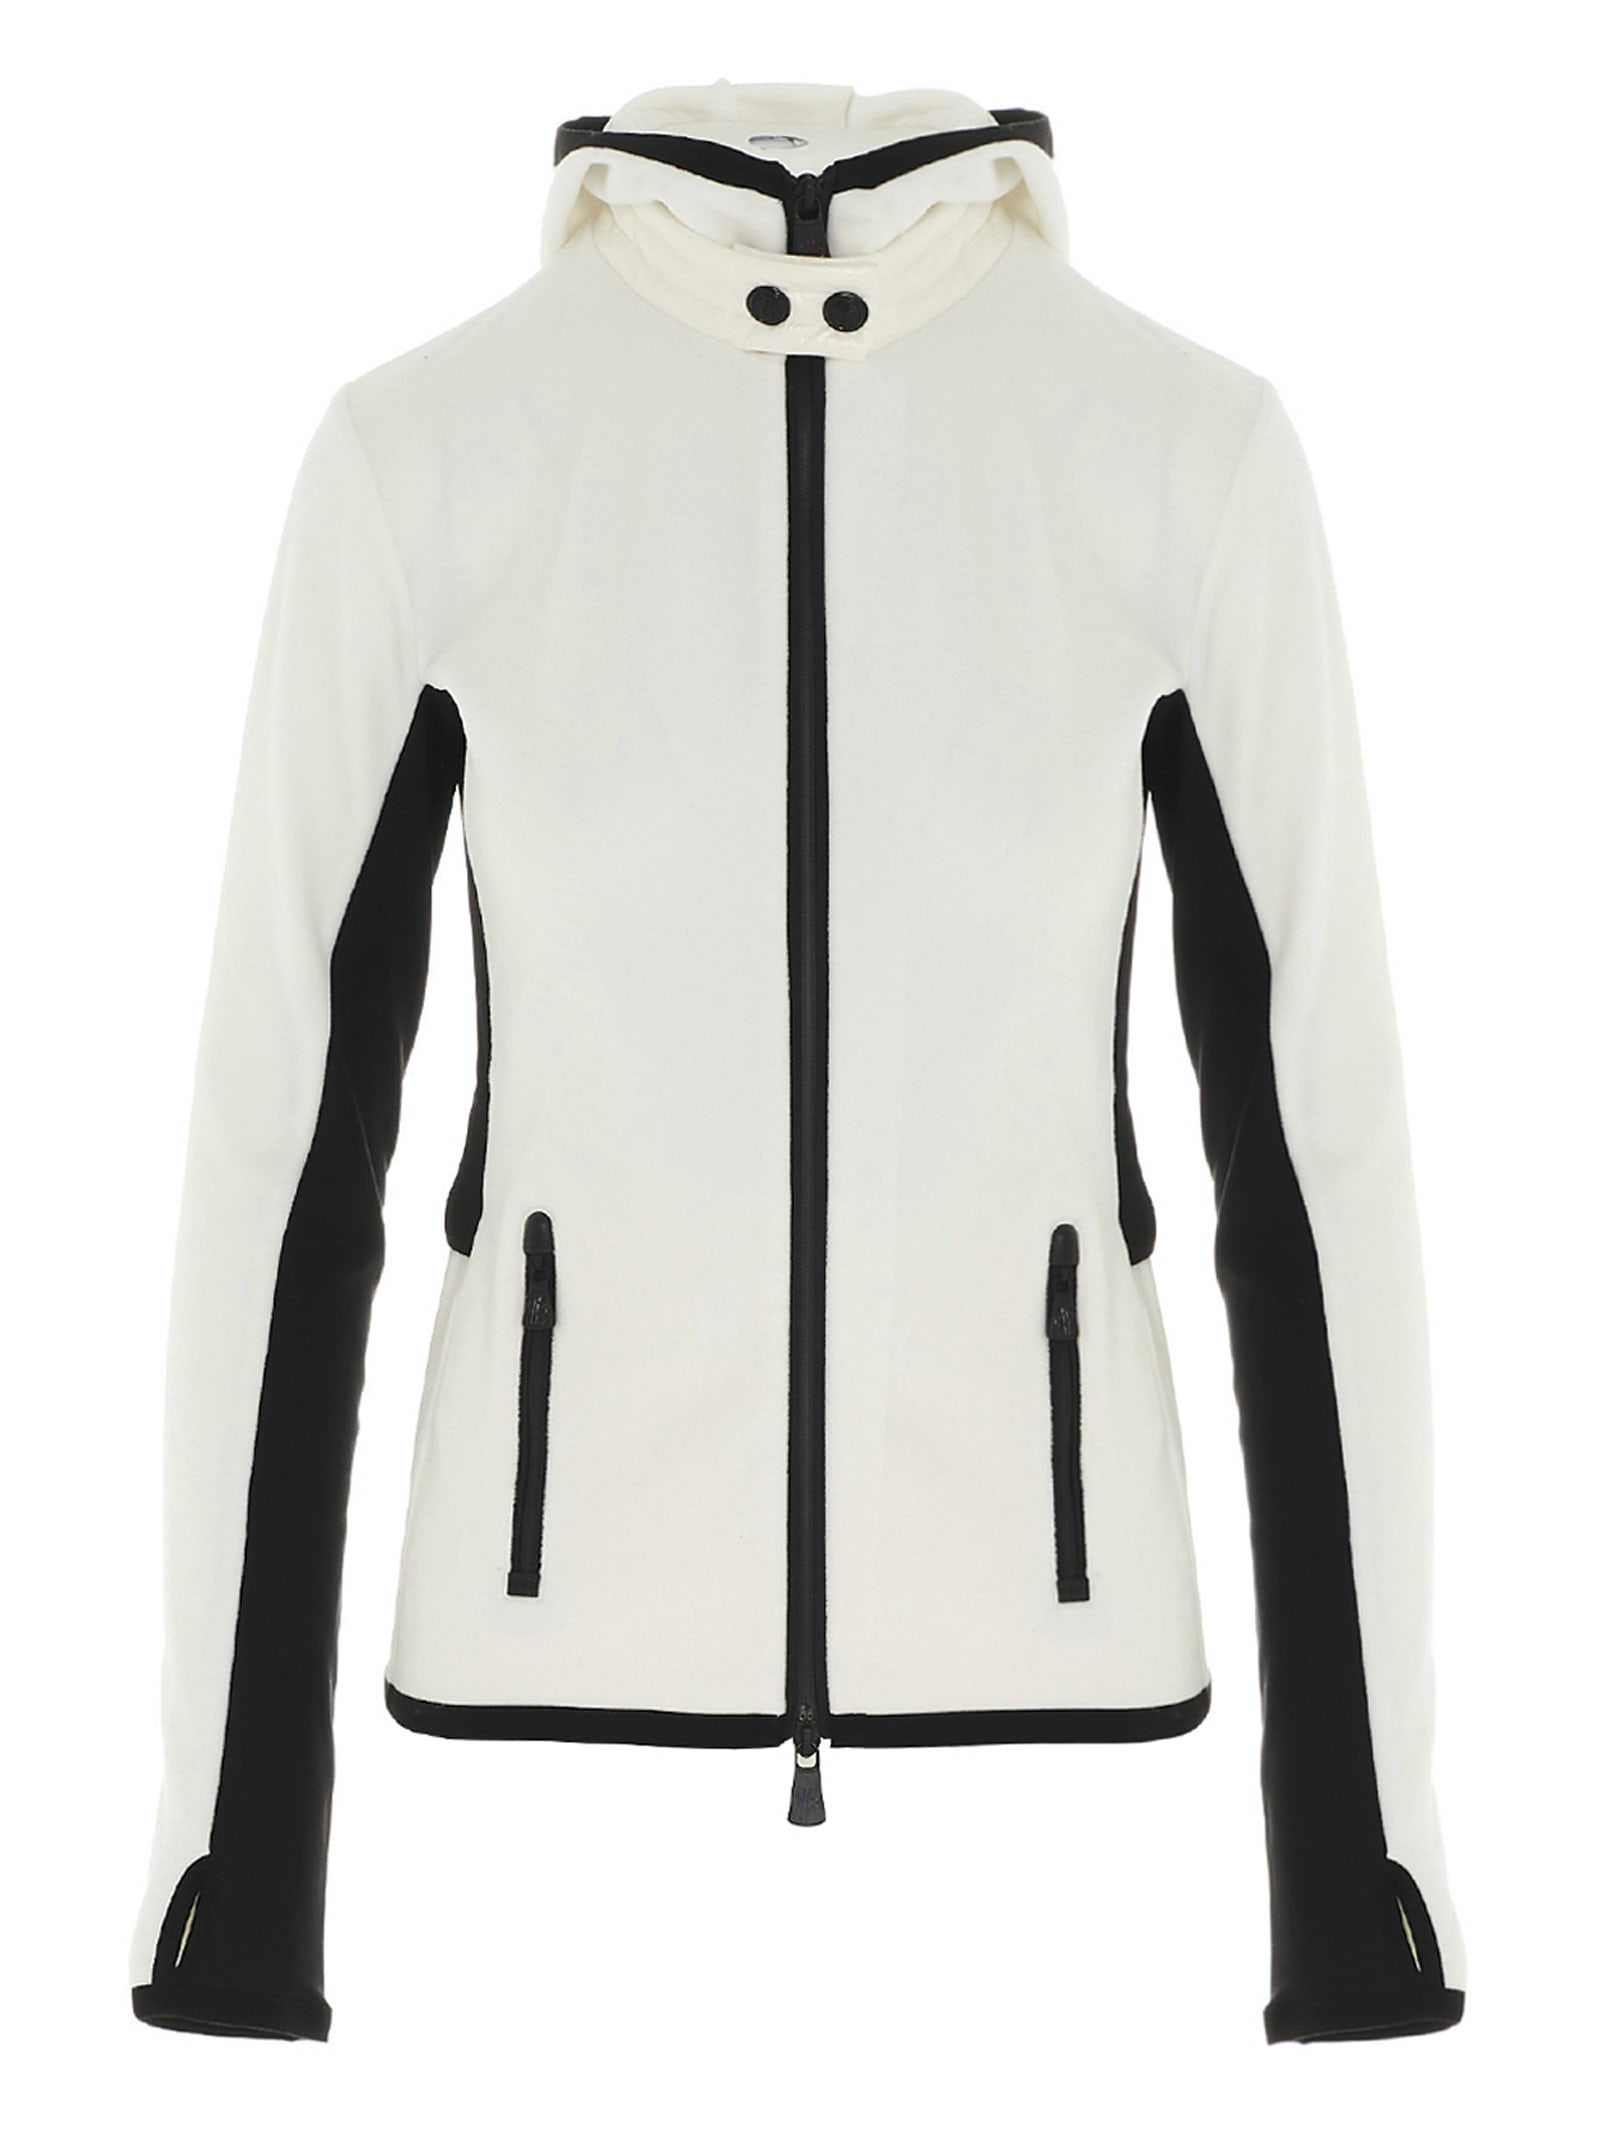 Moncler Grenoble Cardigan In Black & White